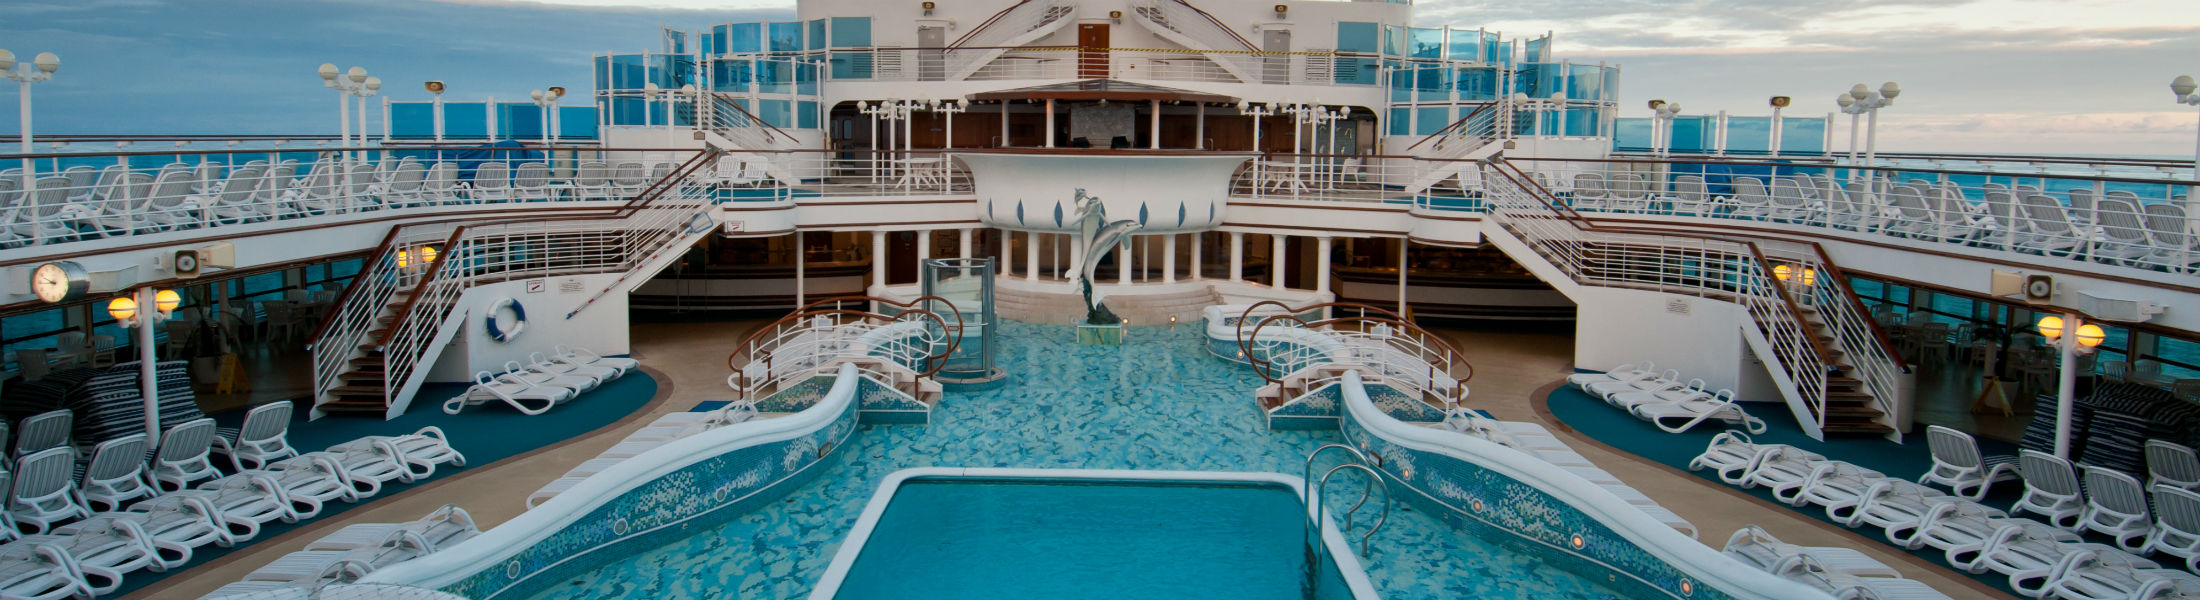 cruise ship with luxurious pools and spa facilities